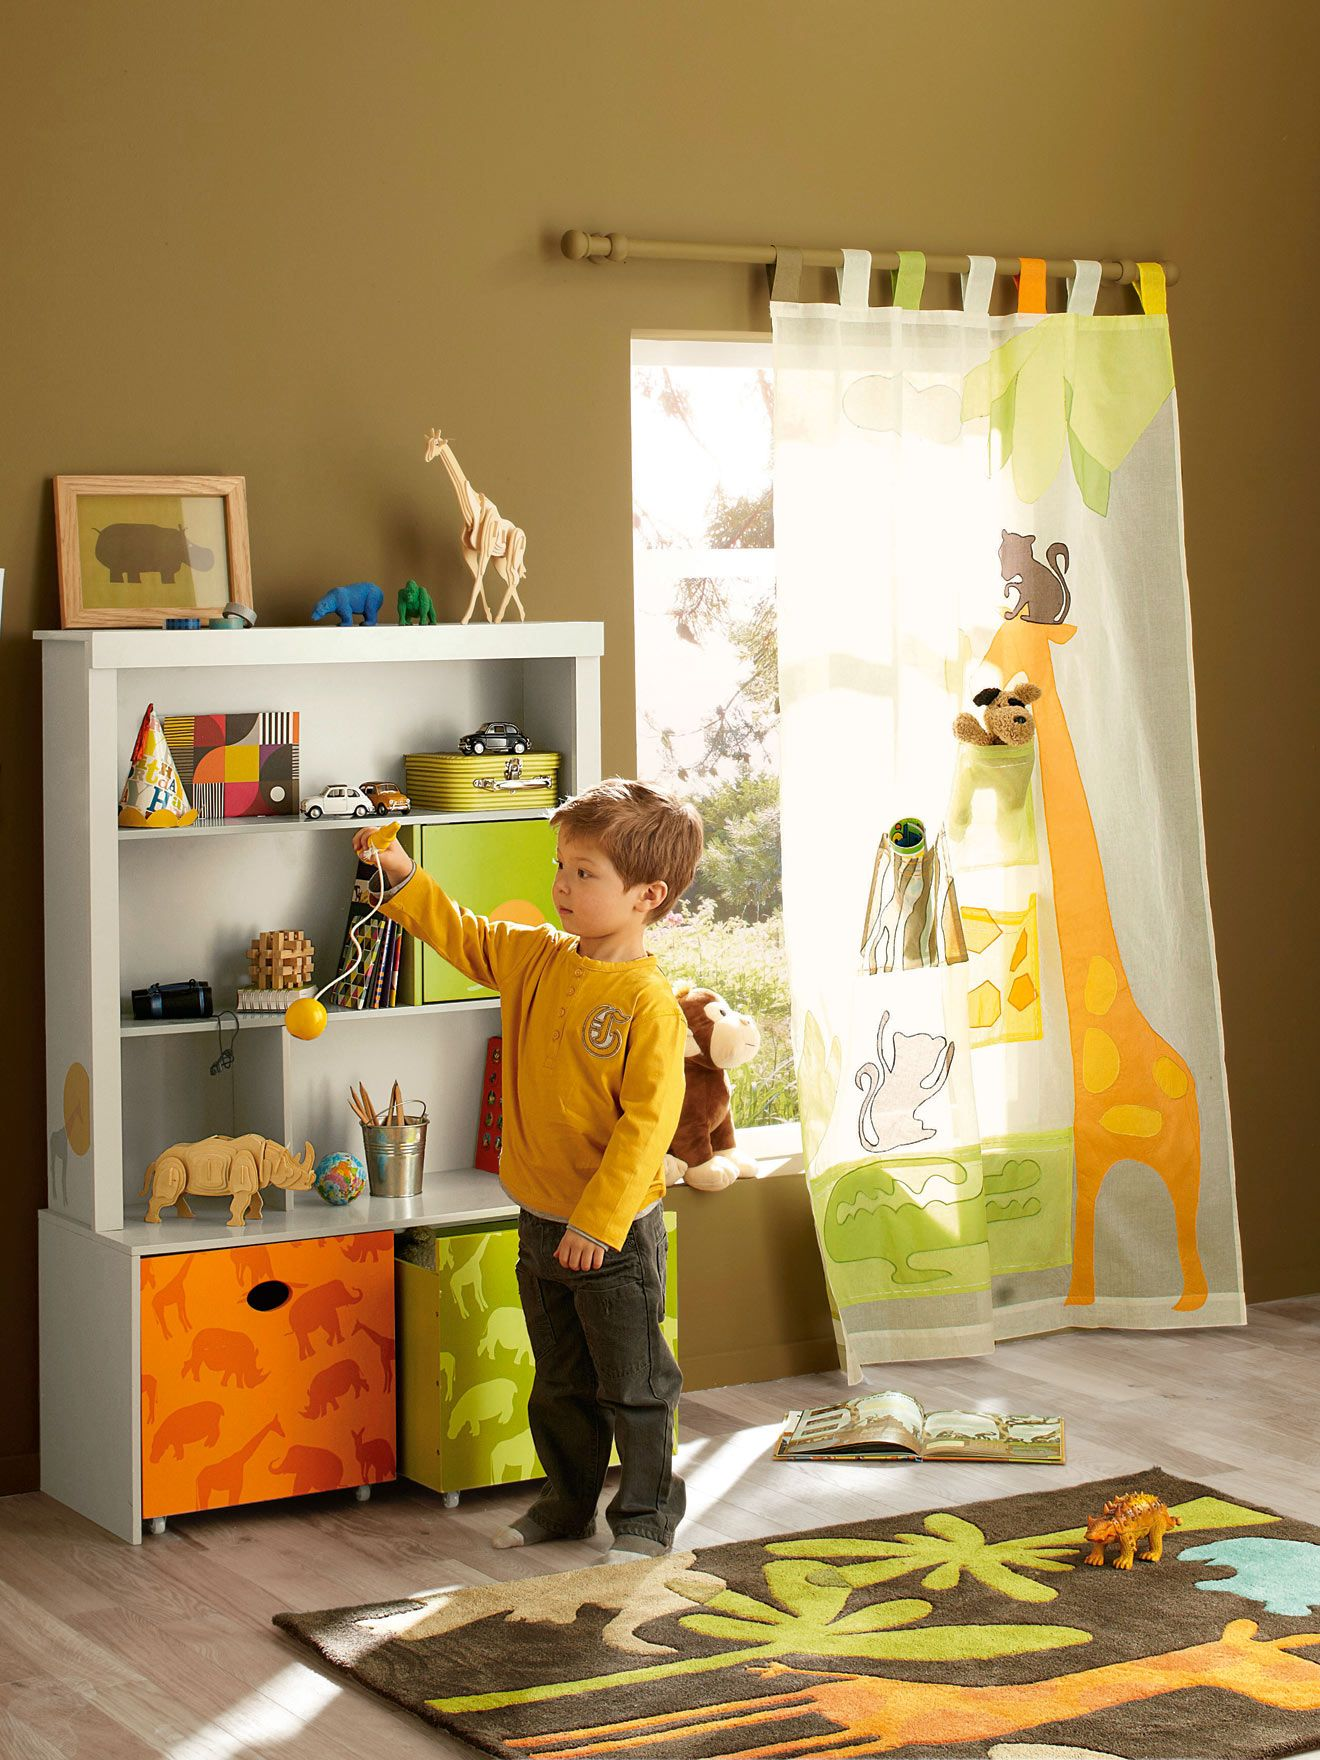 une chambre d 39 enfant qui aime les animaux et la savane rideau poches girafe savane party. Black Bedroom Furniture Sets. Home Design Ideas